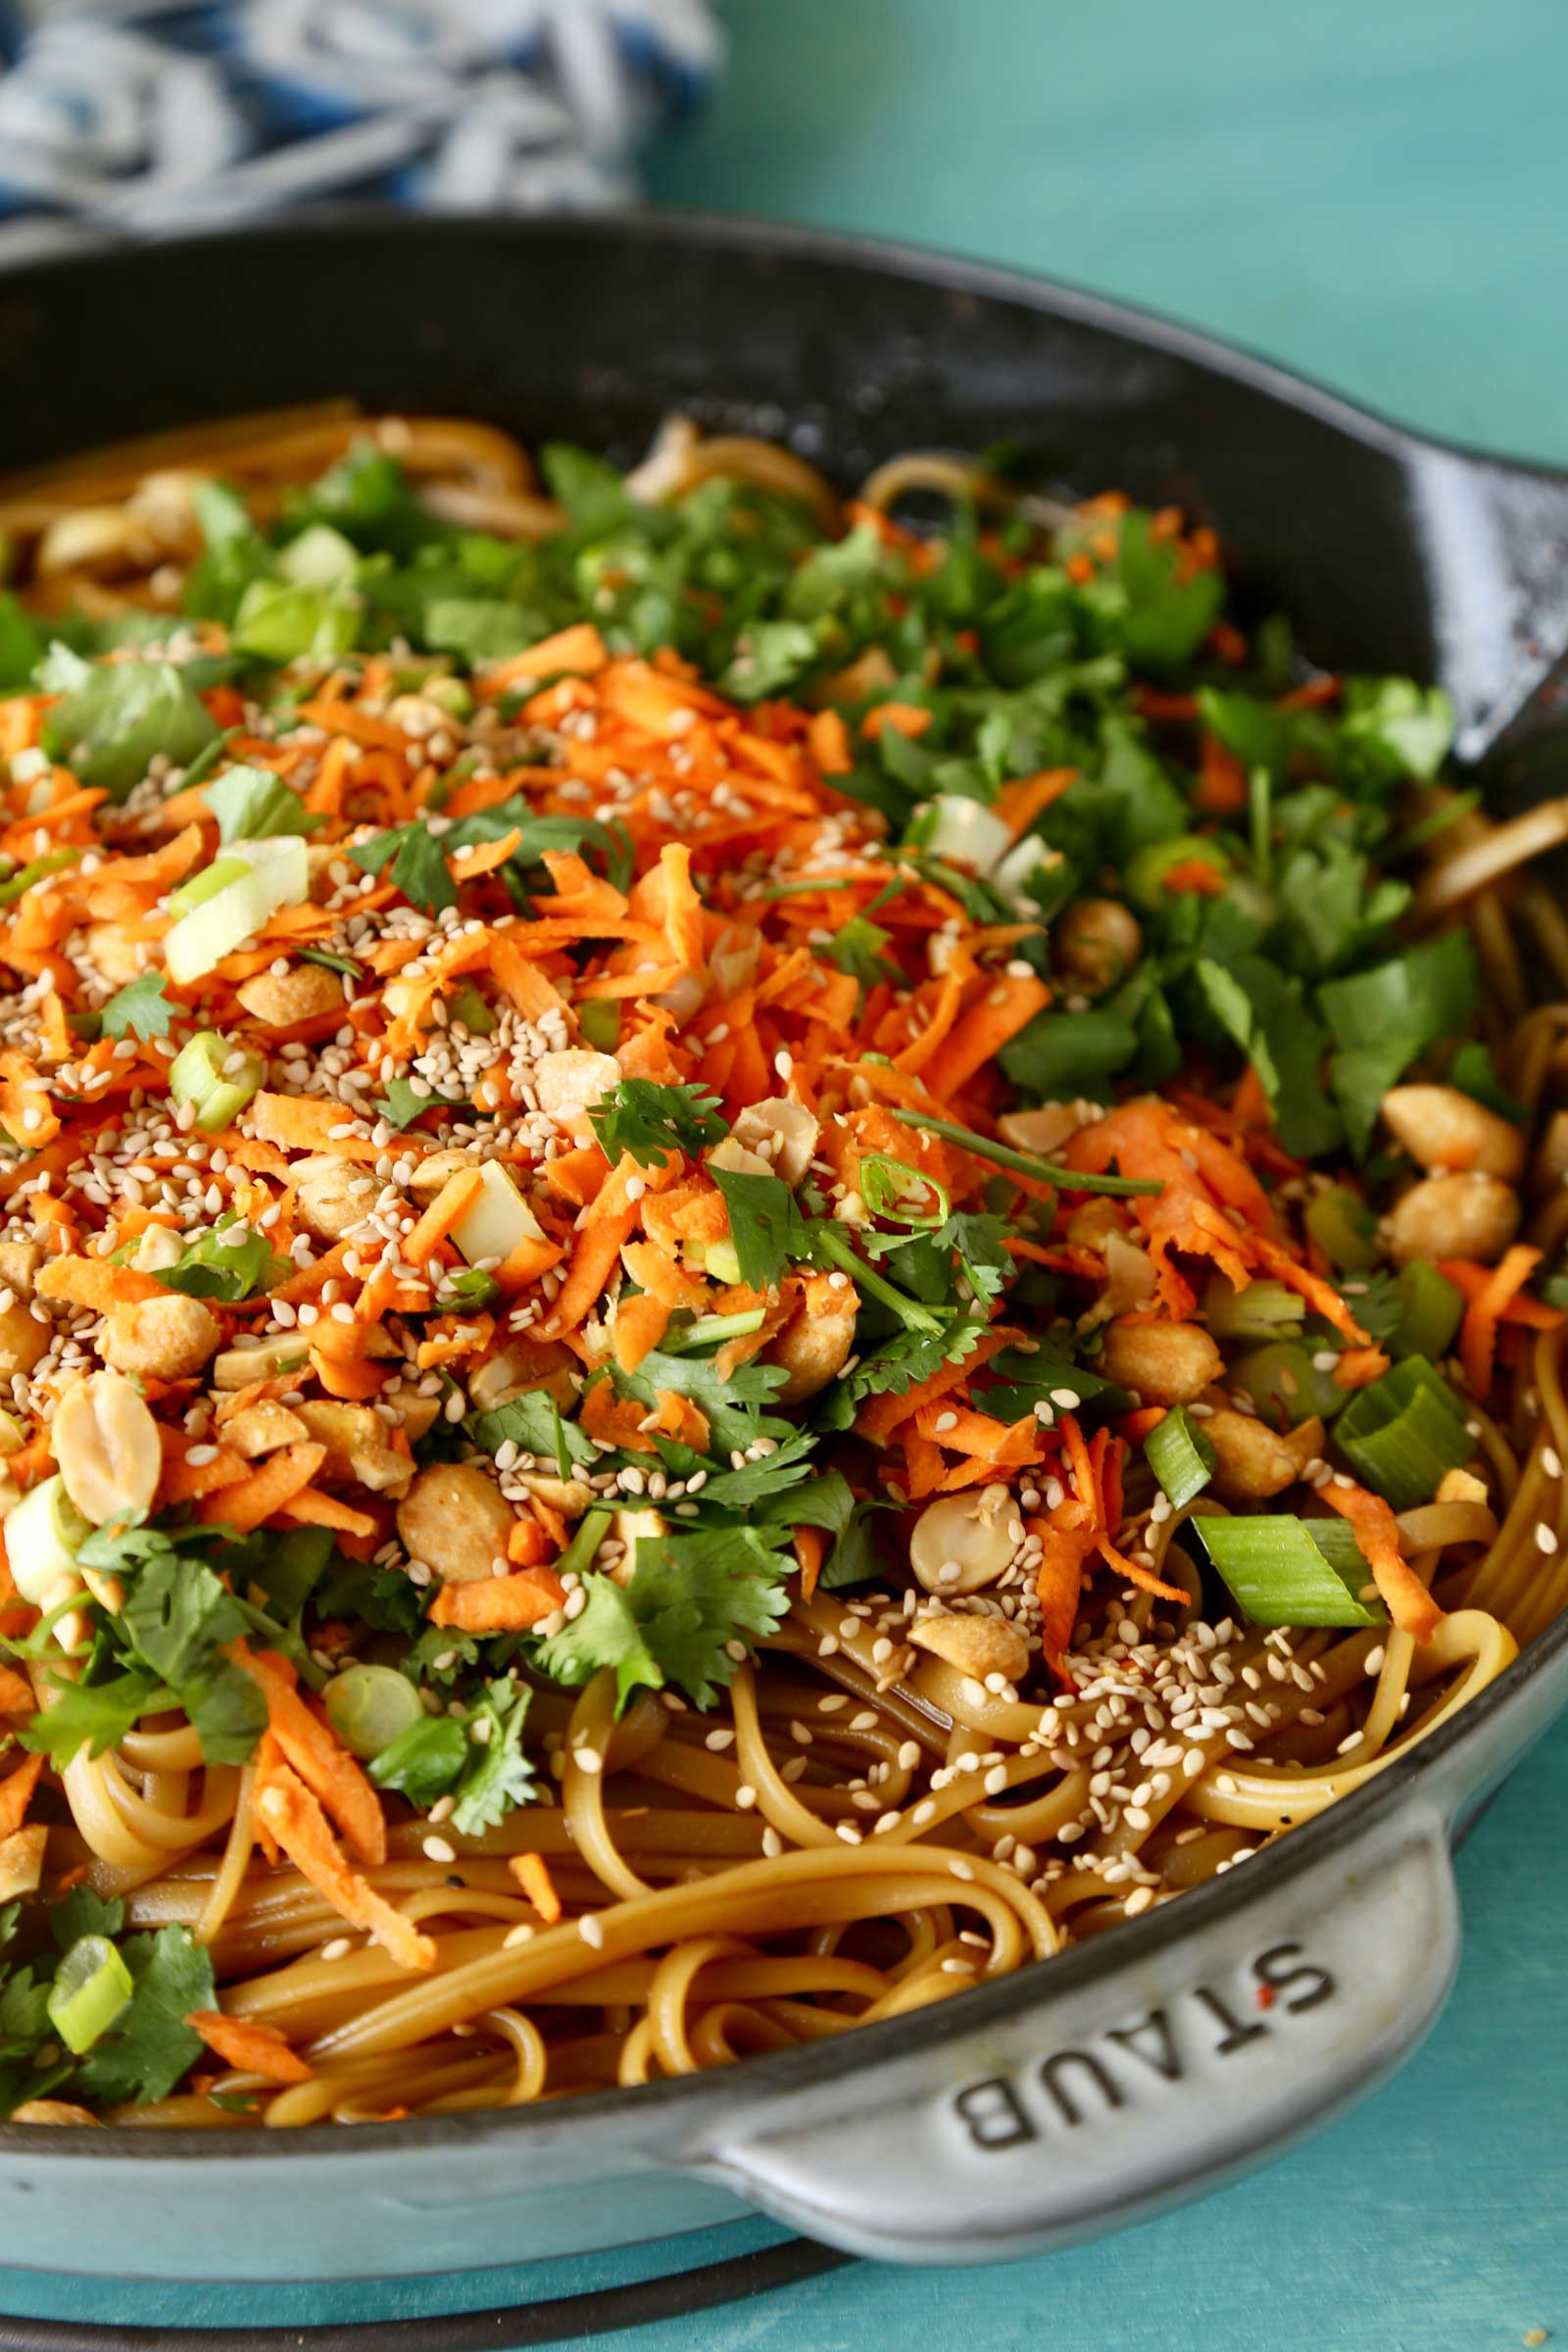 Spicy Thai Noodles | Ready in just 20 minutes, these spicy Thai noodles are made with everyday ingredients and insanely flavorful!  This recipe is vegetarian, but optional protein additions mentioned in post! | The Chunky Chef | #easyrecipe #thai #noodles #weeknightdinner #vegetarian